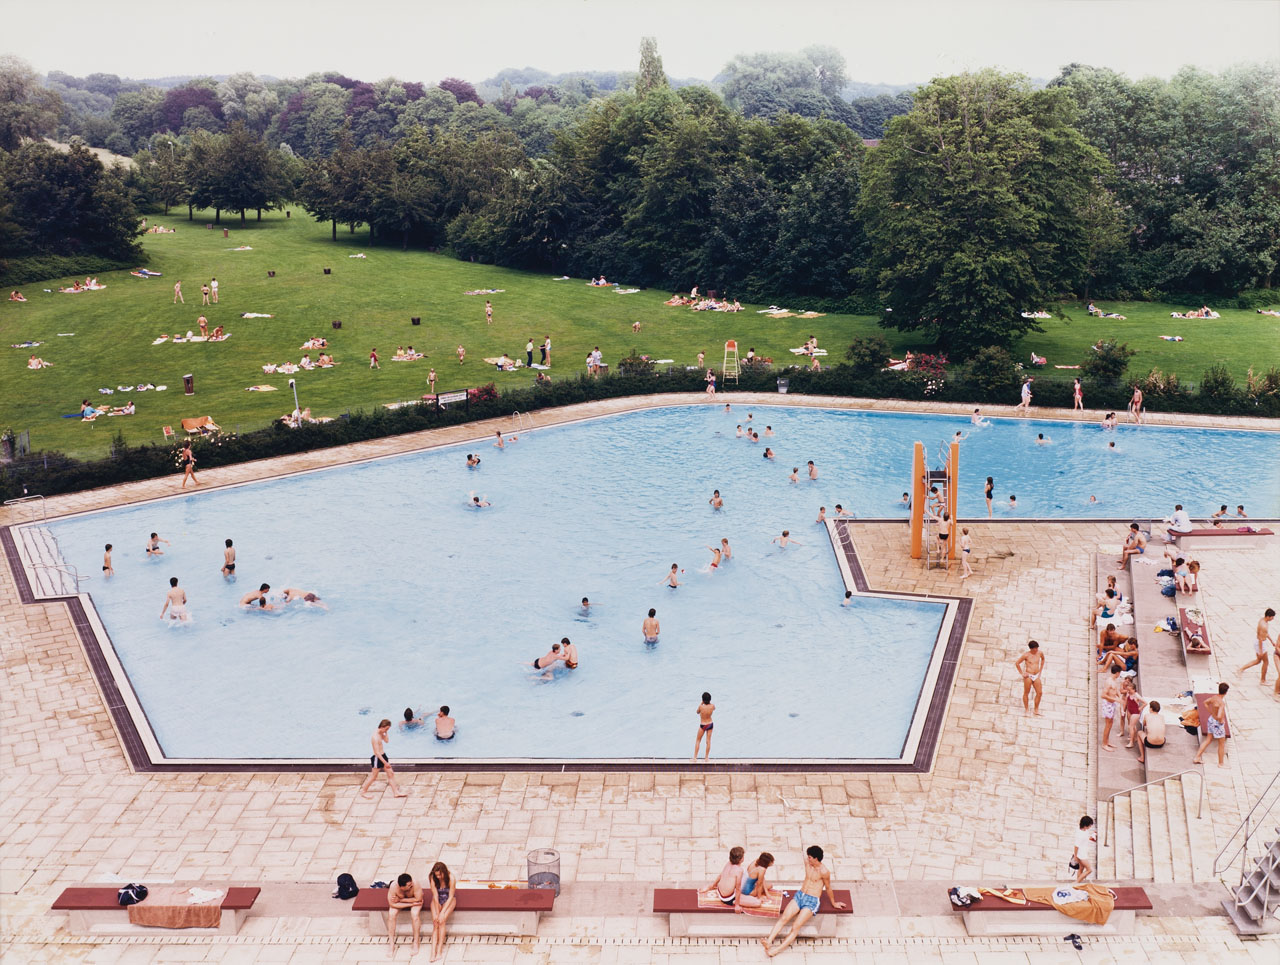 andreas-gursky-a_ratingenschwimmbad-in-fried.jpg